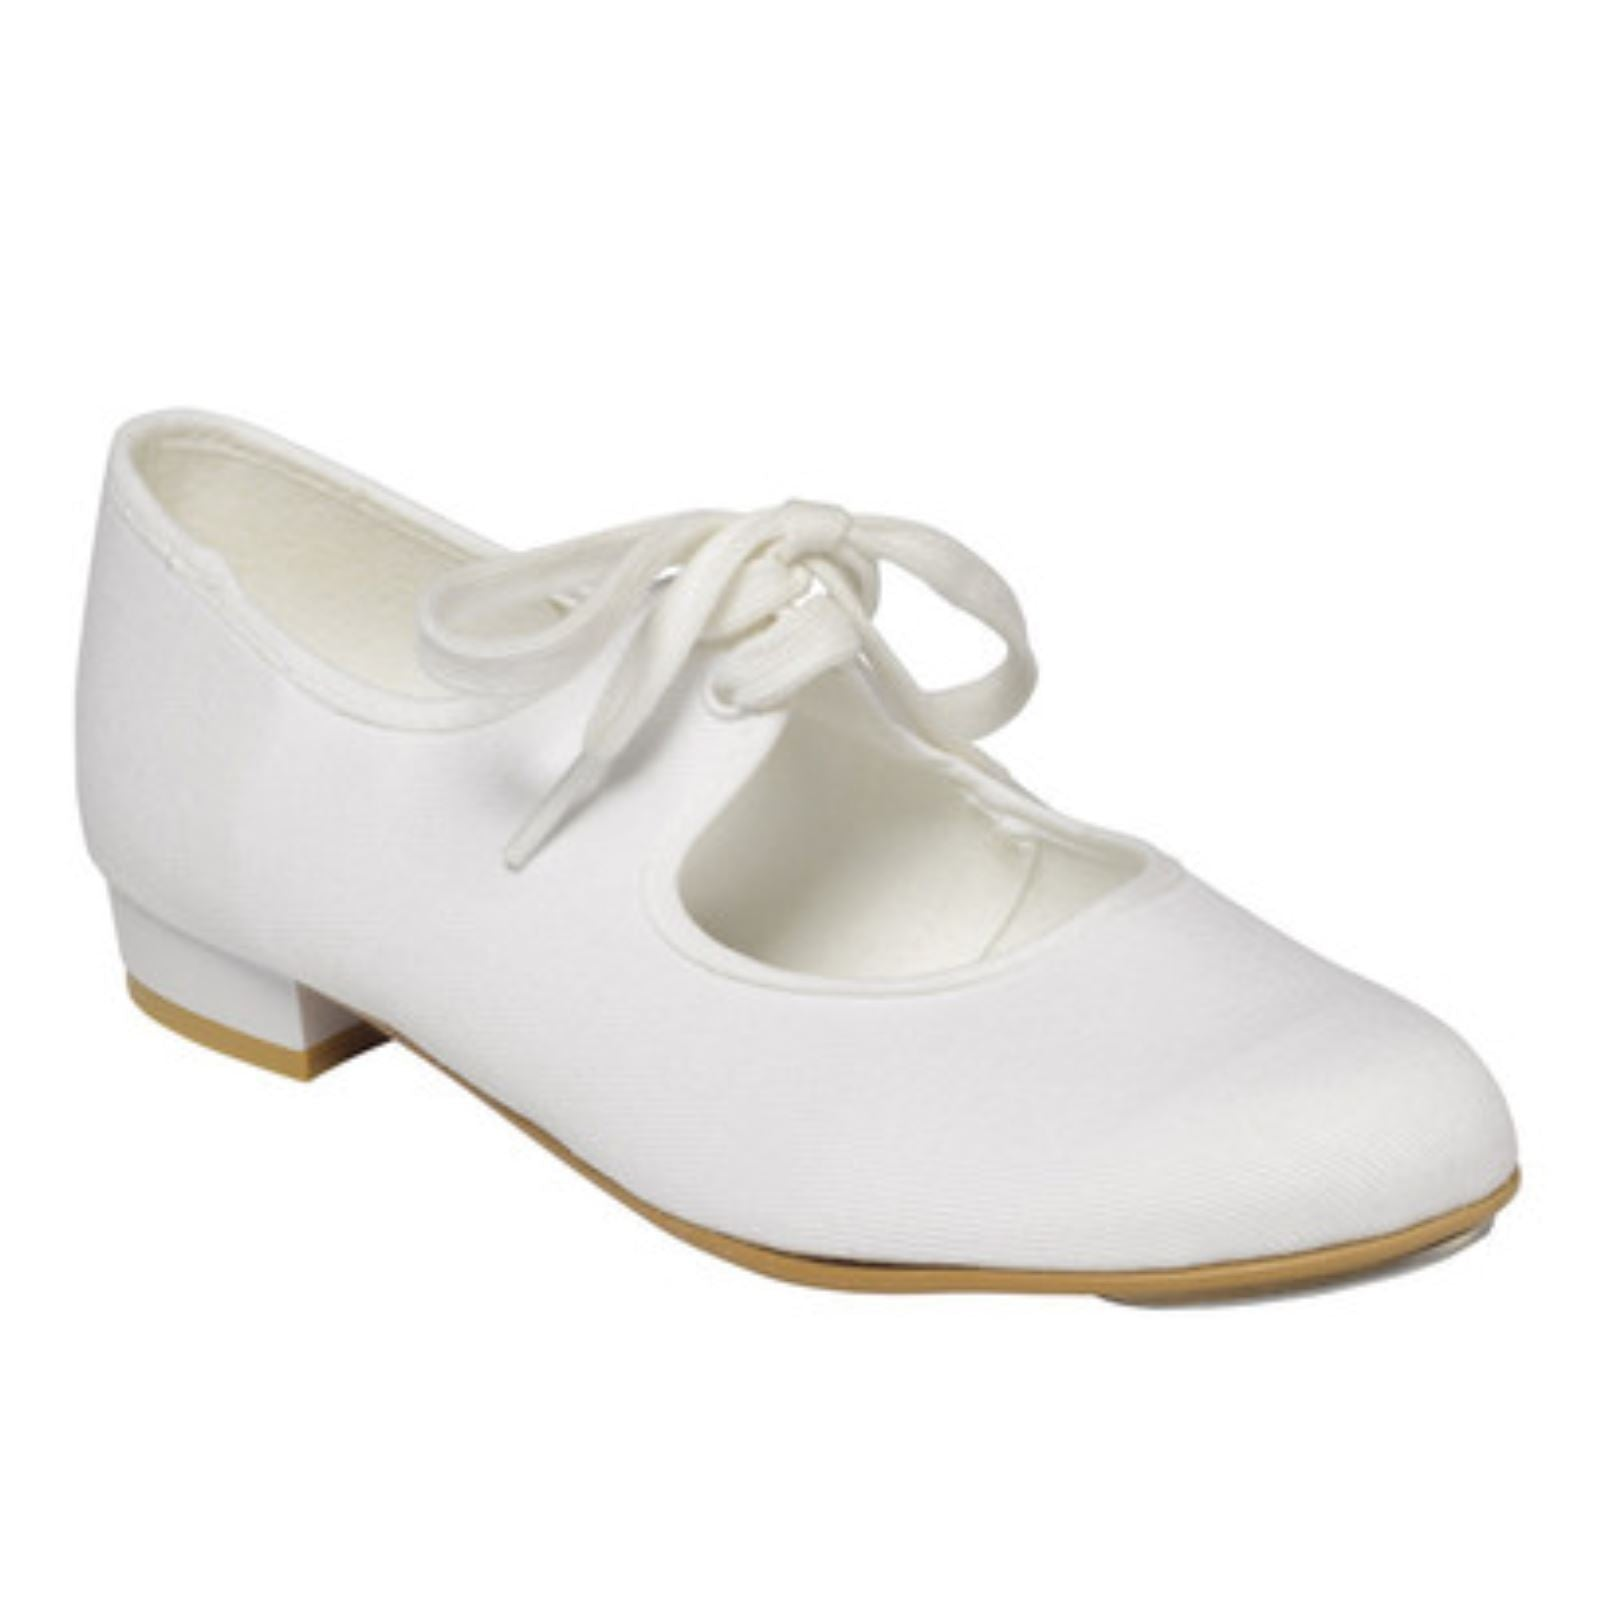 official shop good service new photos TAPPERS & POINTERS WHITE CANVAS LOW HEEL TAP DANCE SHOES - Click ...